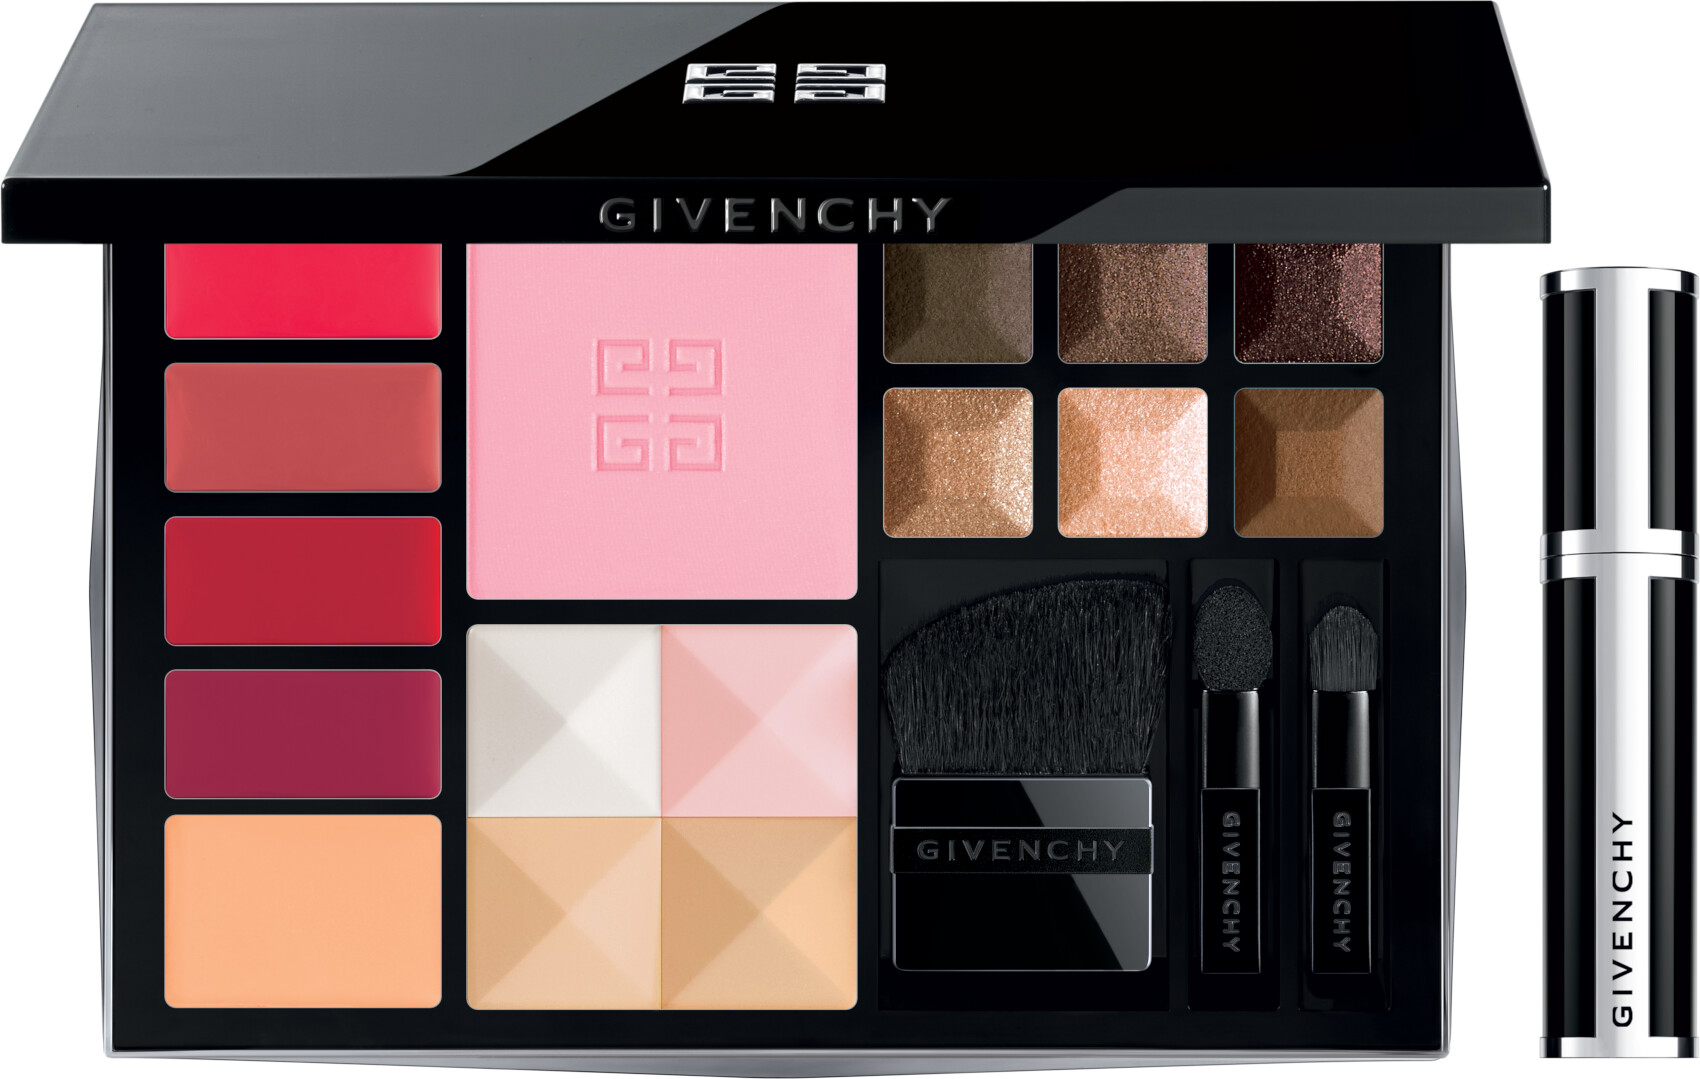 Givenchy Makeup Essentials Palette With